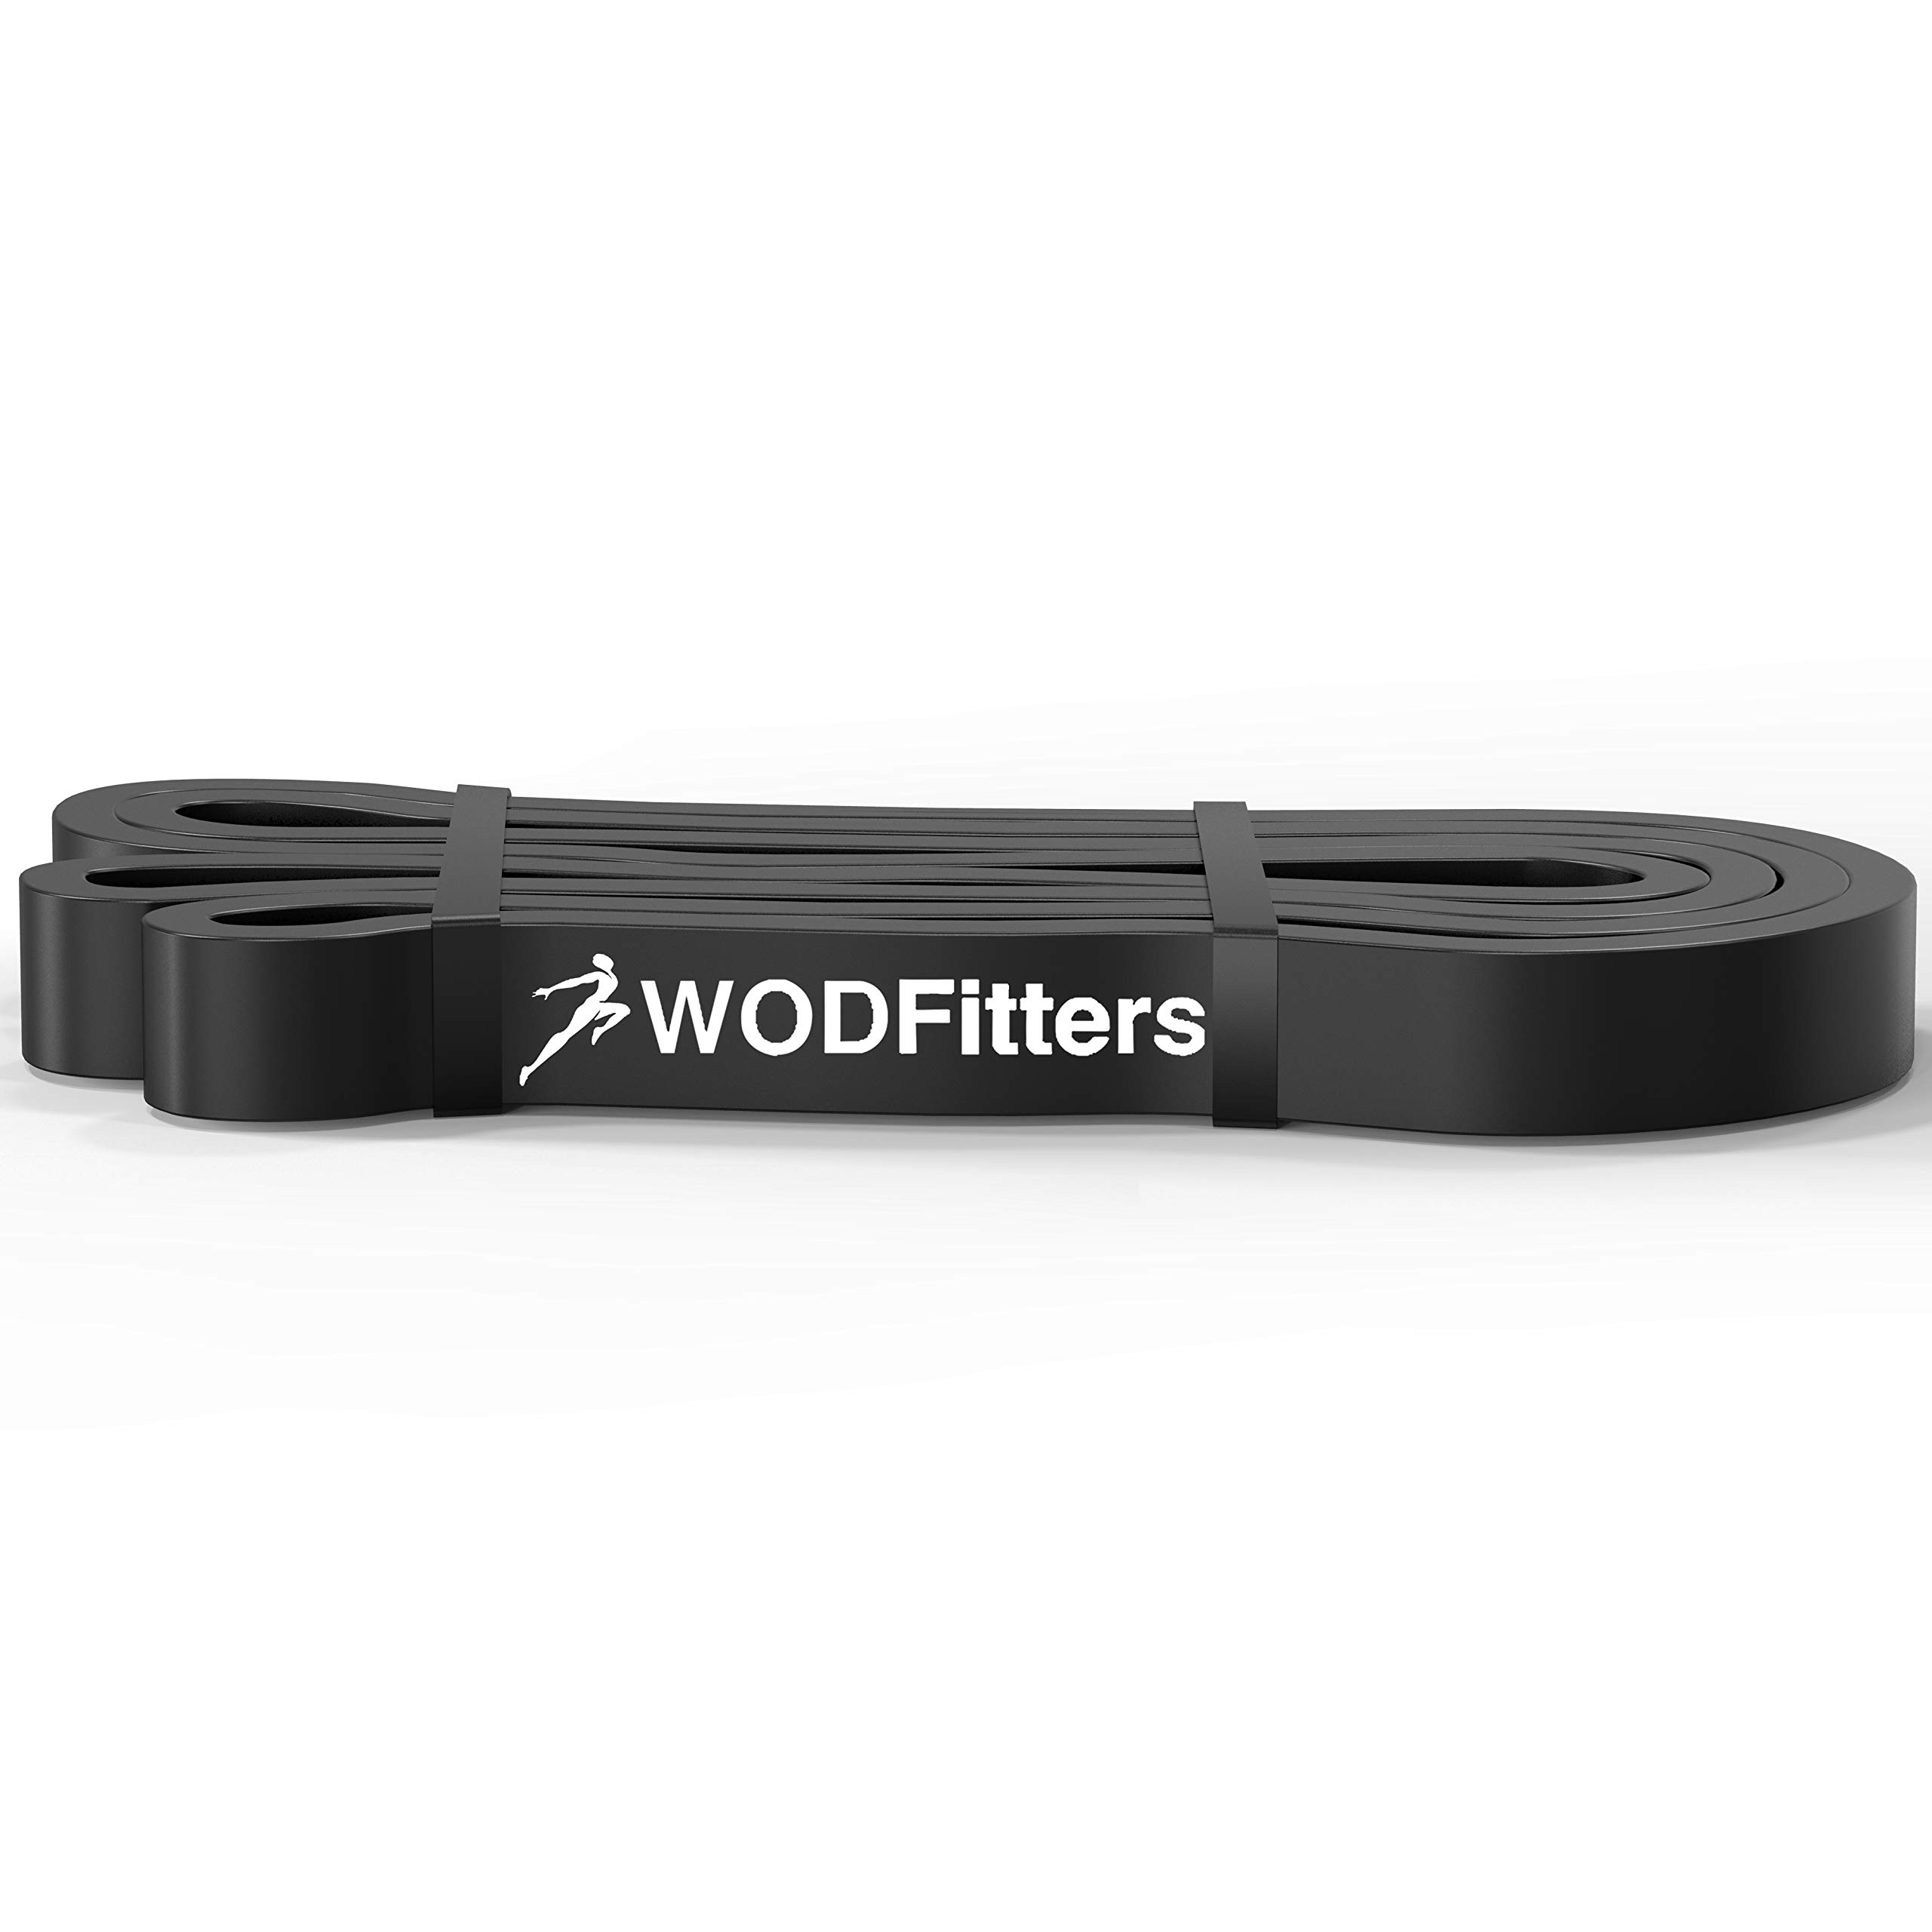 WODFitters Black Band Resistance Bands Black - Single Band Assisted Pull-up Resistance Band Cross Fitness Training Power-Lifting - by WODFitters (Image #4)